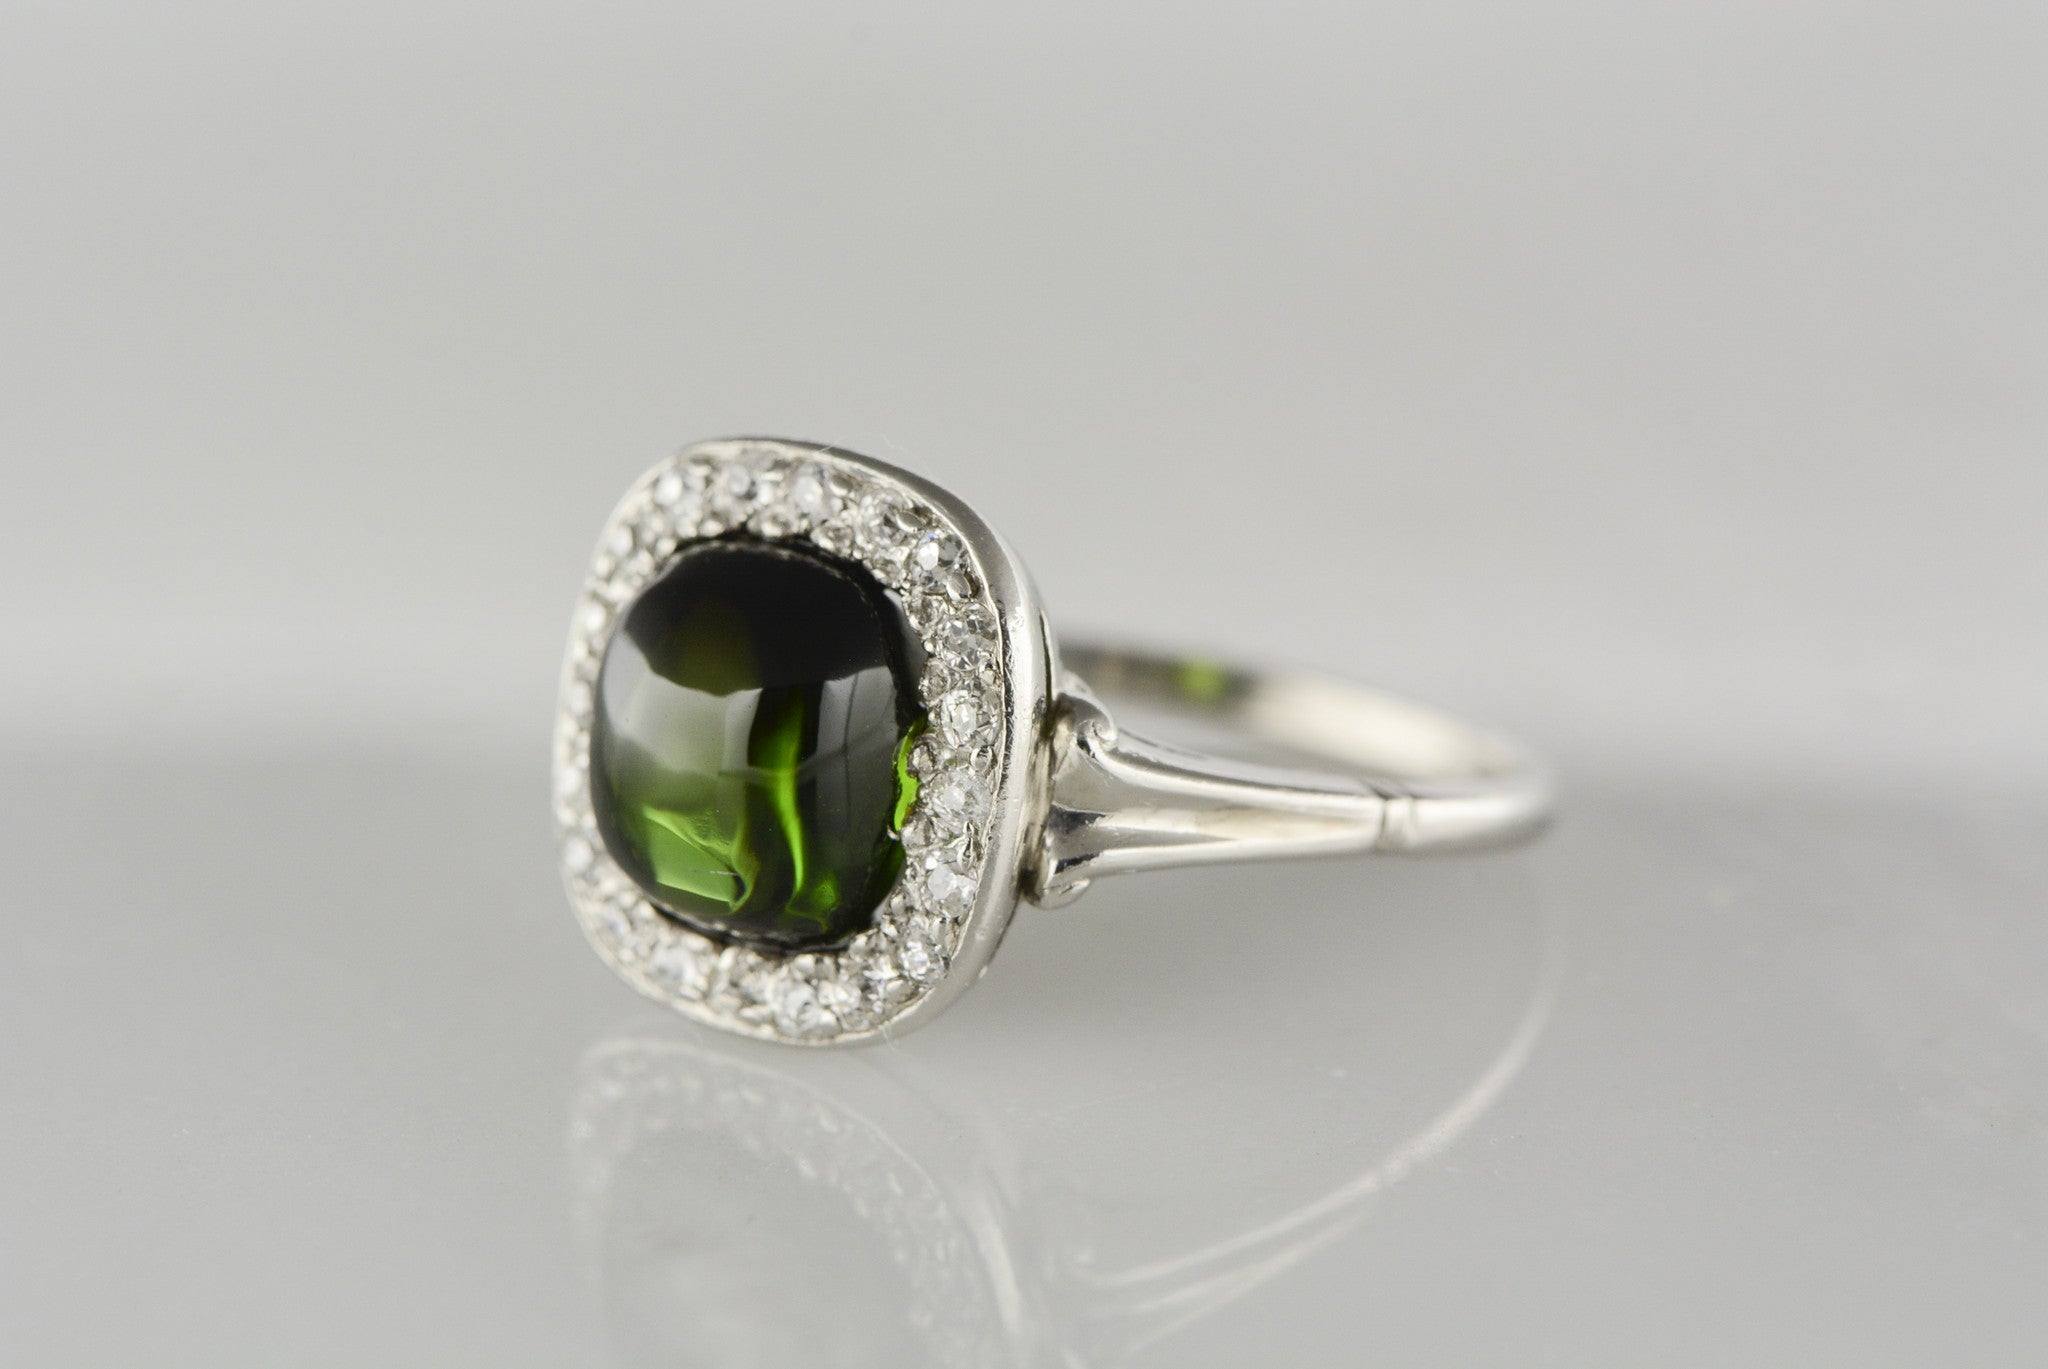 c n tourmaline p rings green fancy engagement dyer cut cuts tourmalinendiamond diamond platinum john ring